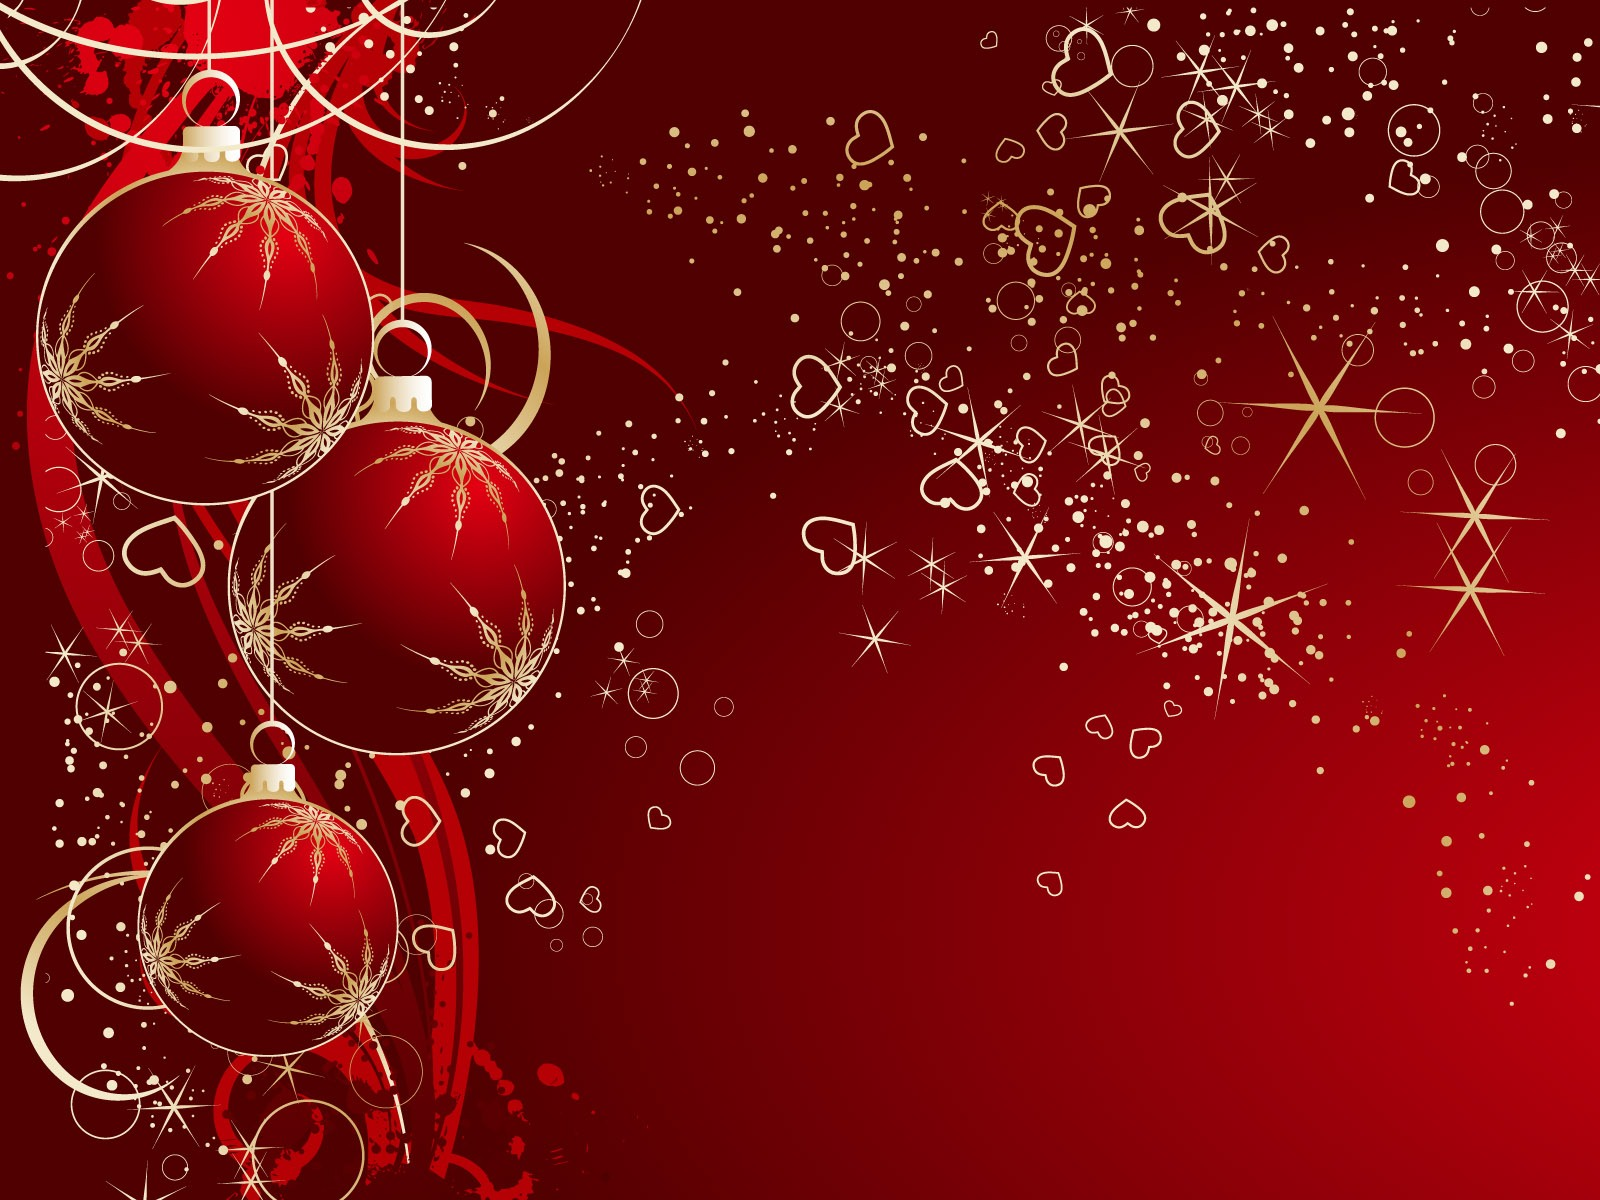 Christmas Wallpaper HDComputer Wallpaper Wallpaper Downloads 1600x1200